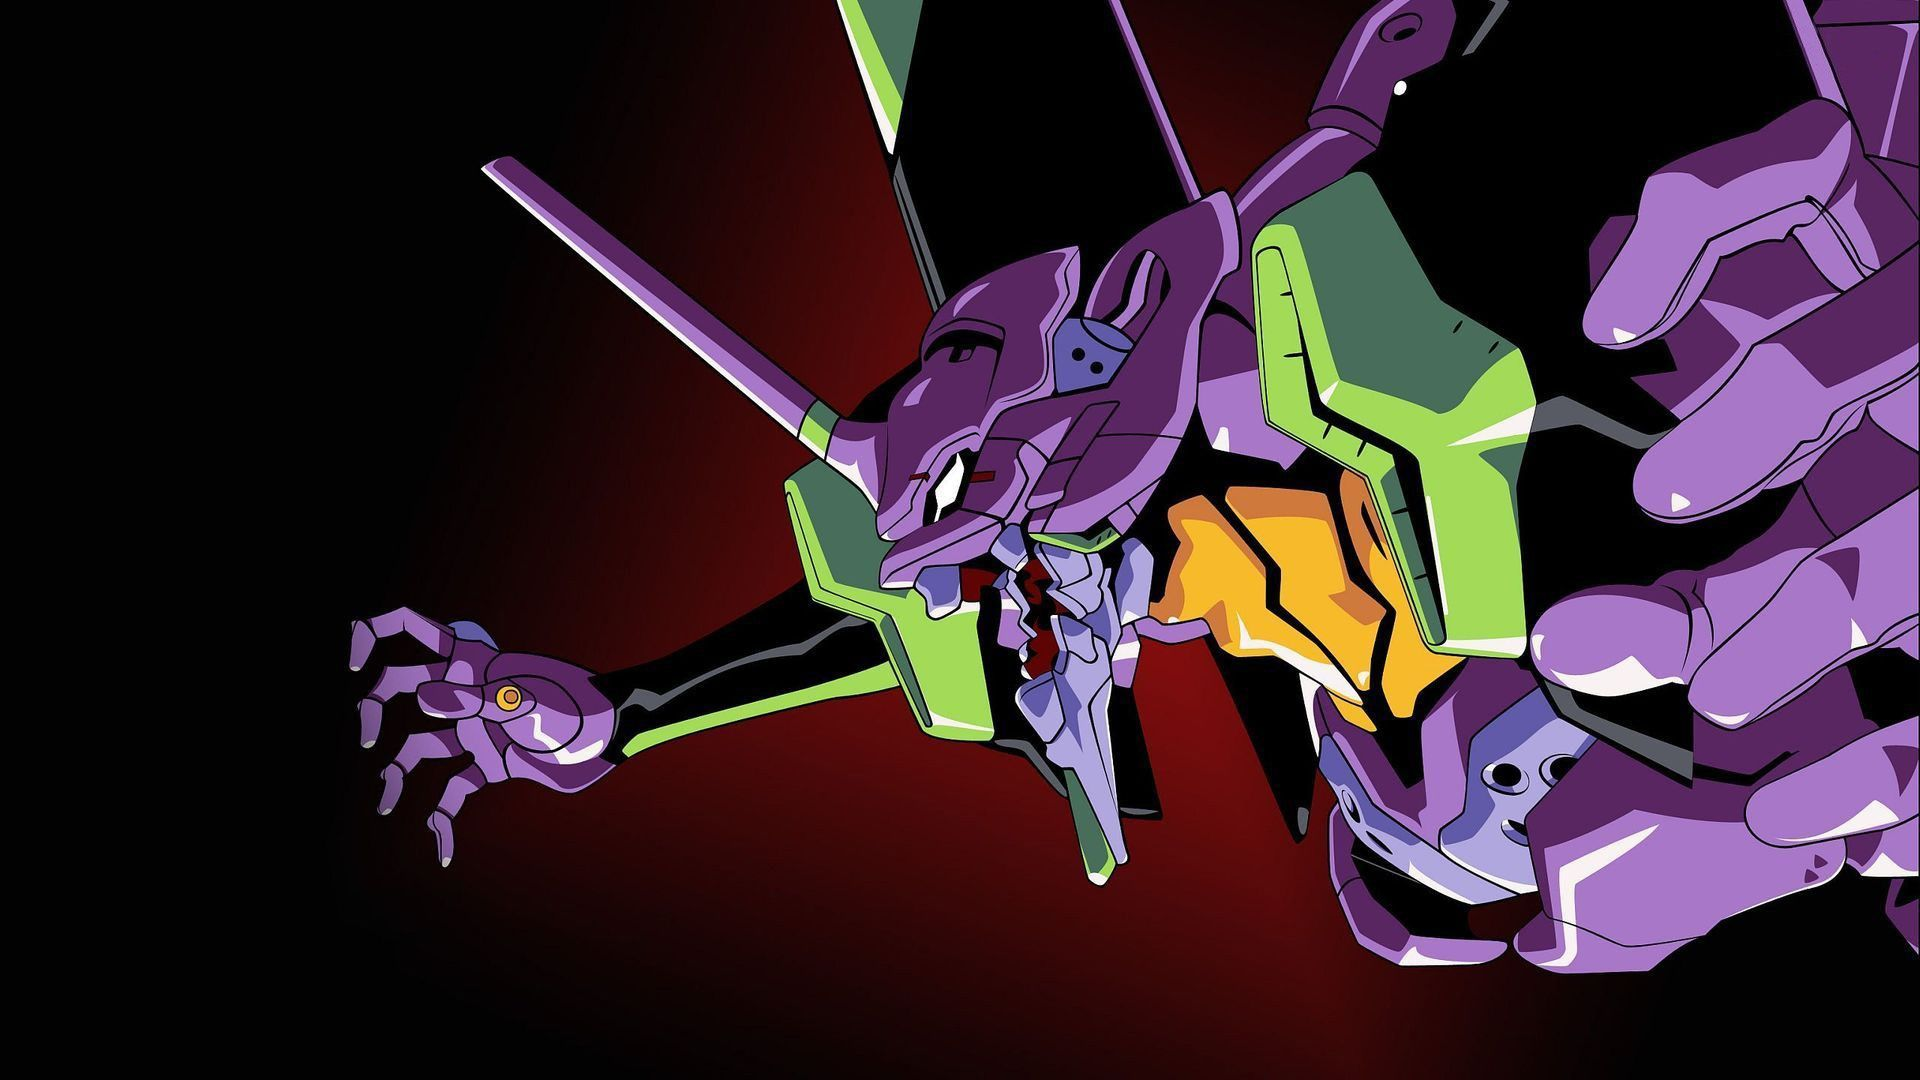 1883771, neon genesis evangelion category Free Awesome